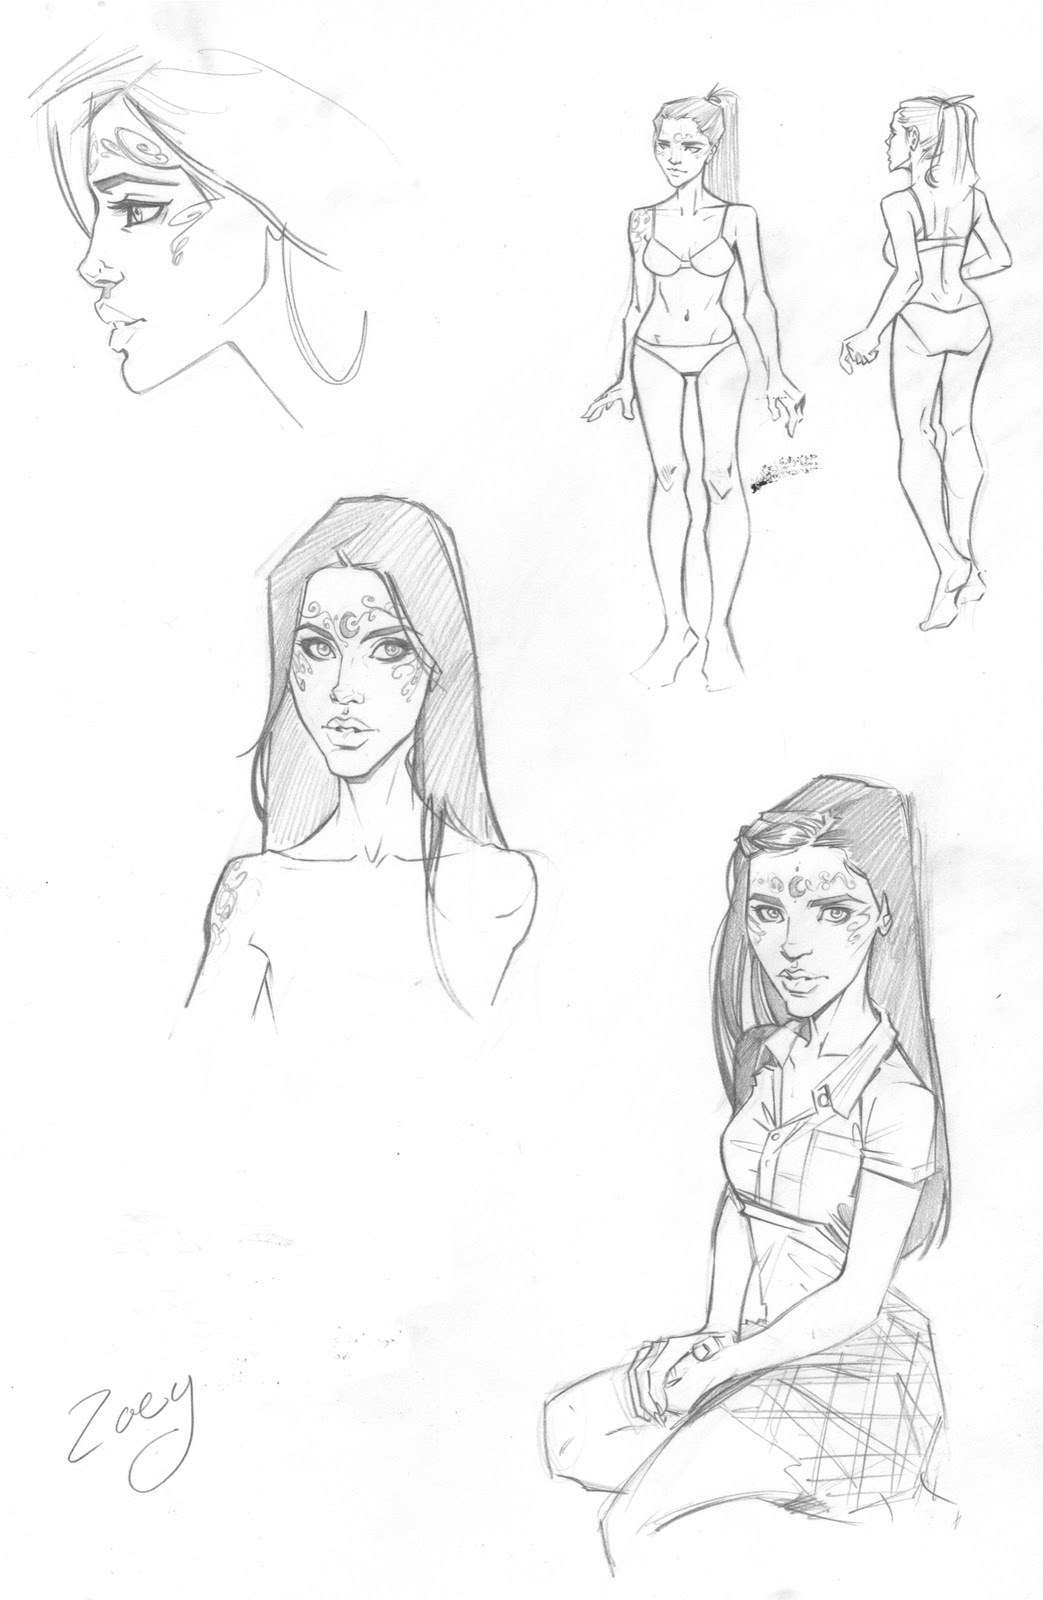 BD House of night Houseofnightsketches2